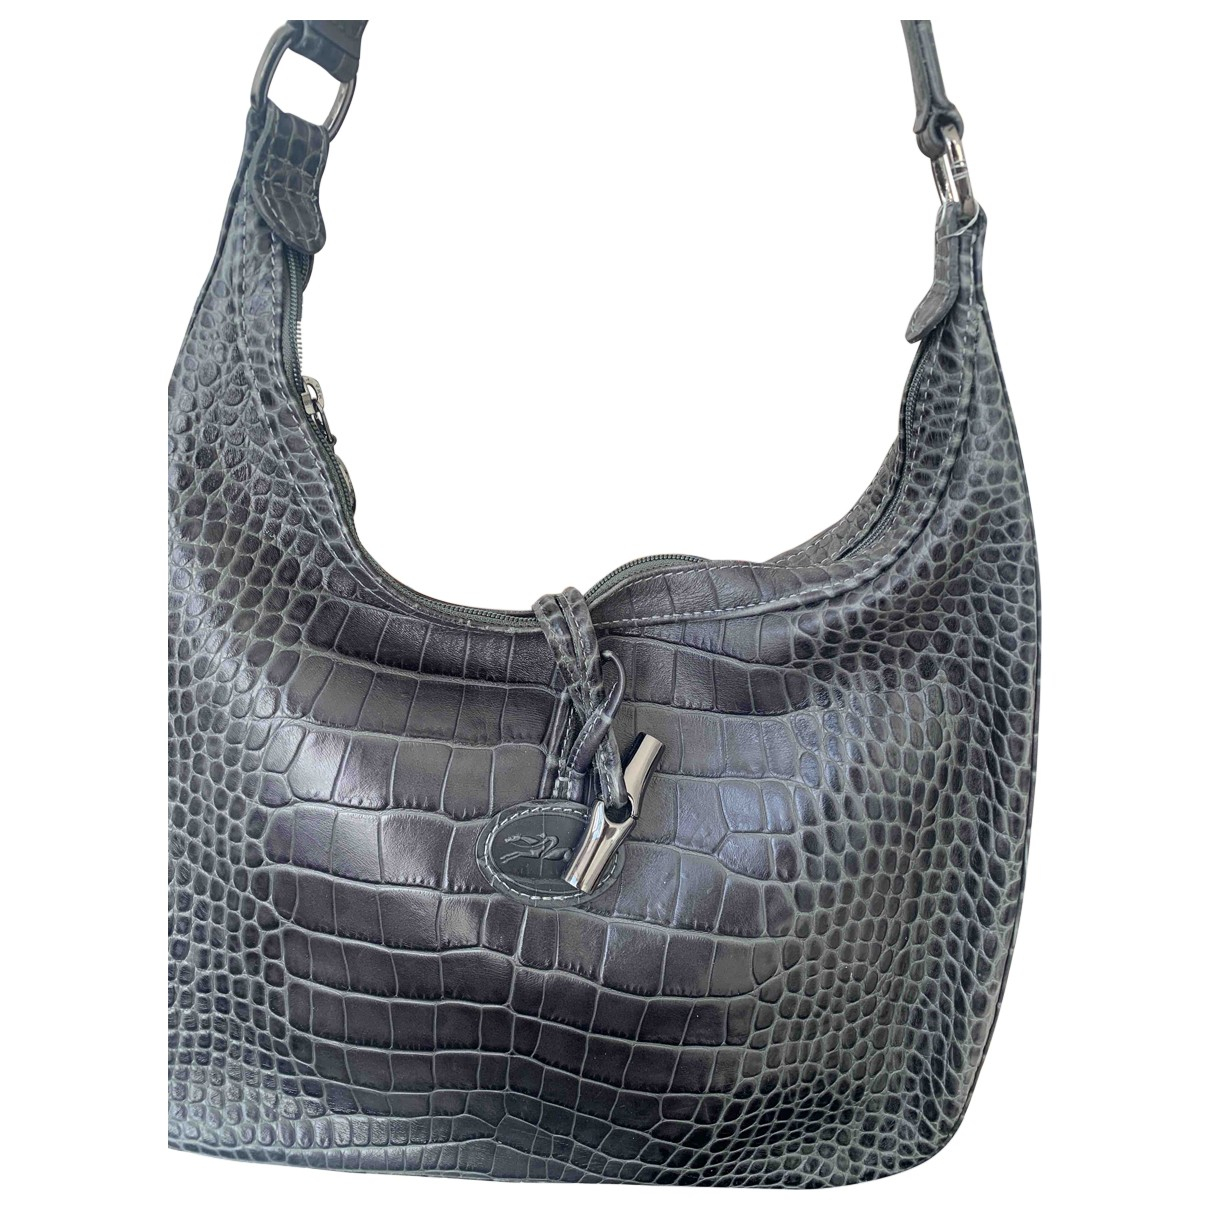 Longchamp \N Grey Leather handbag for Women \N